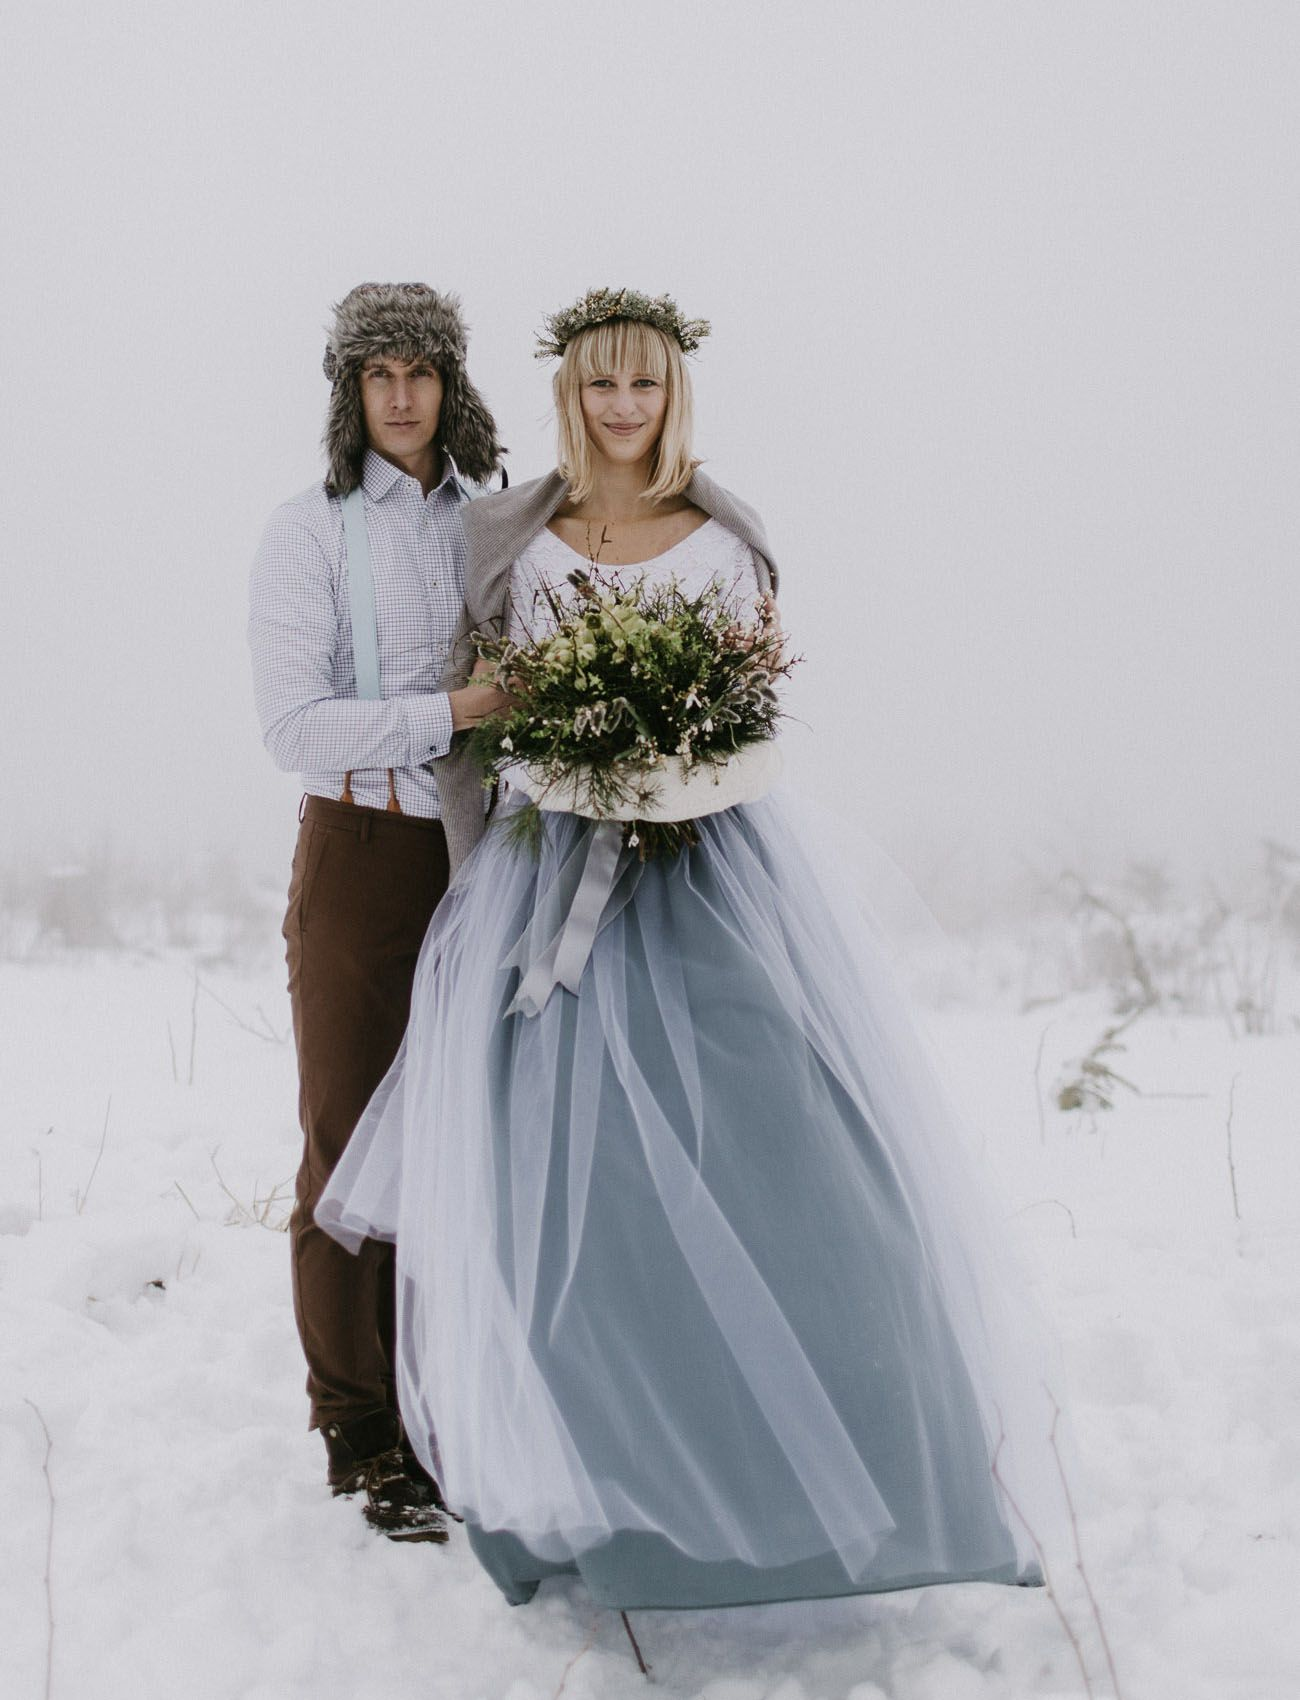 A Secret Wedding in the Snowy Mountains of the Czech ...